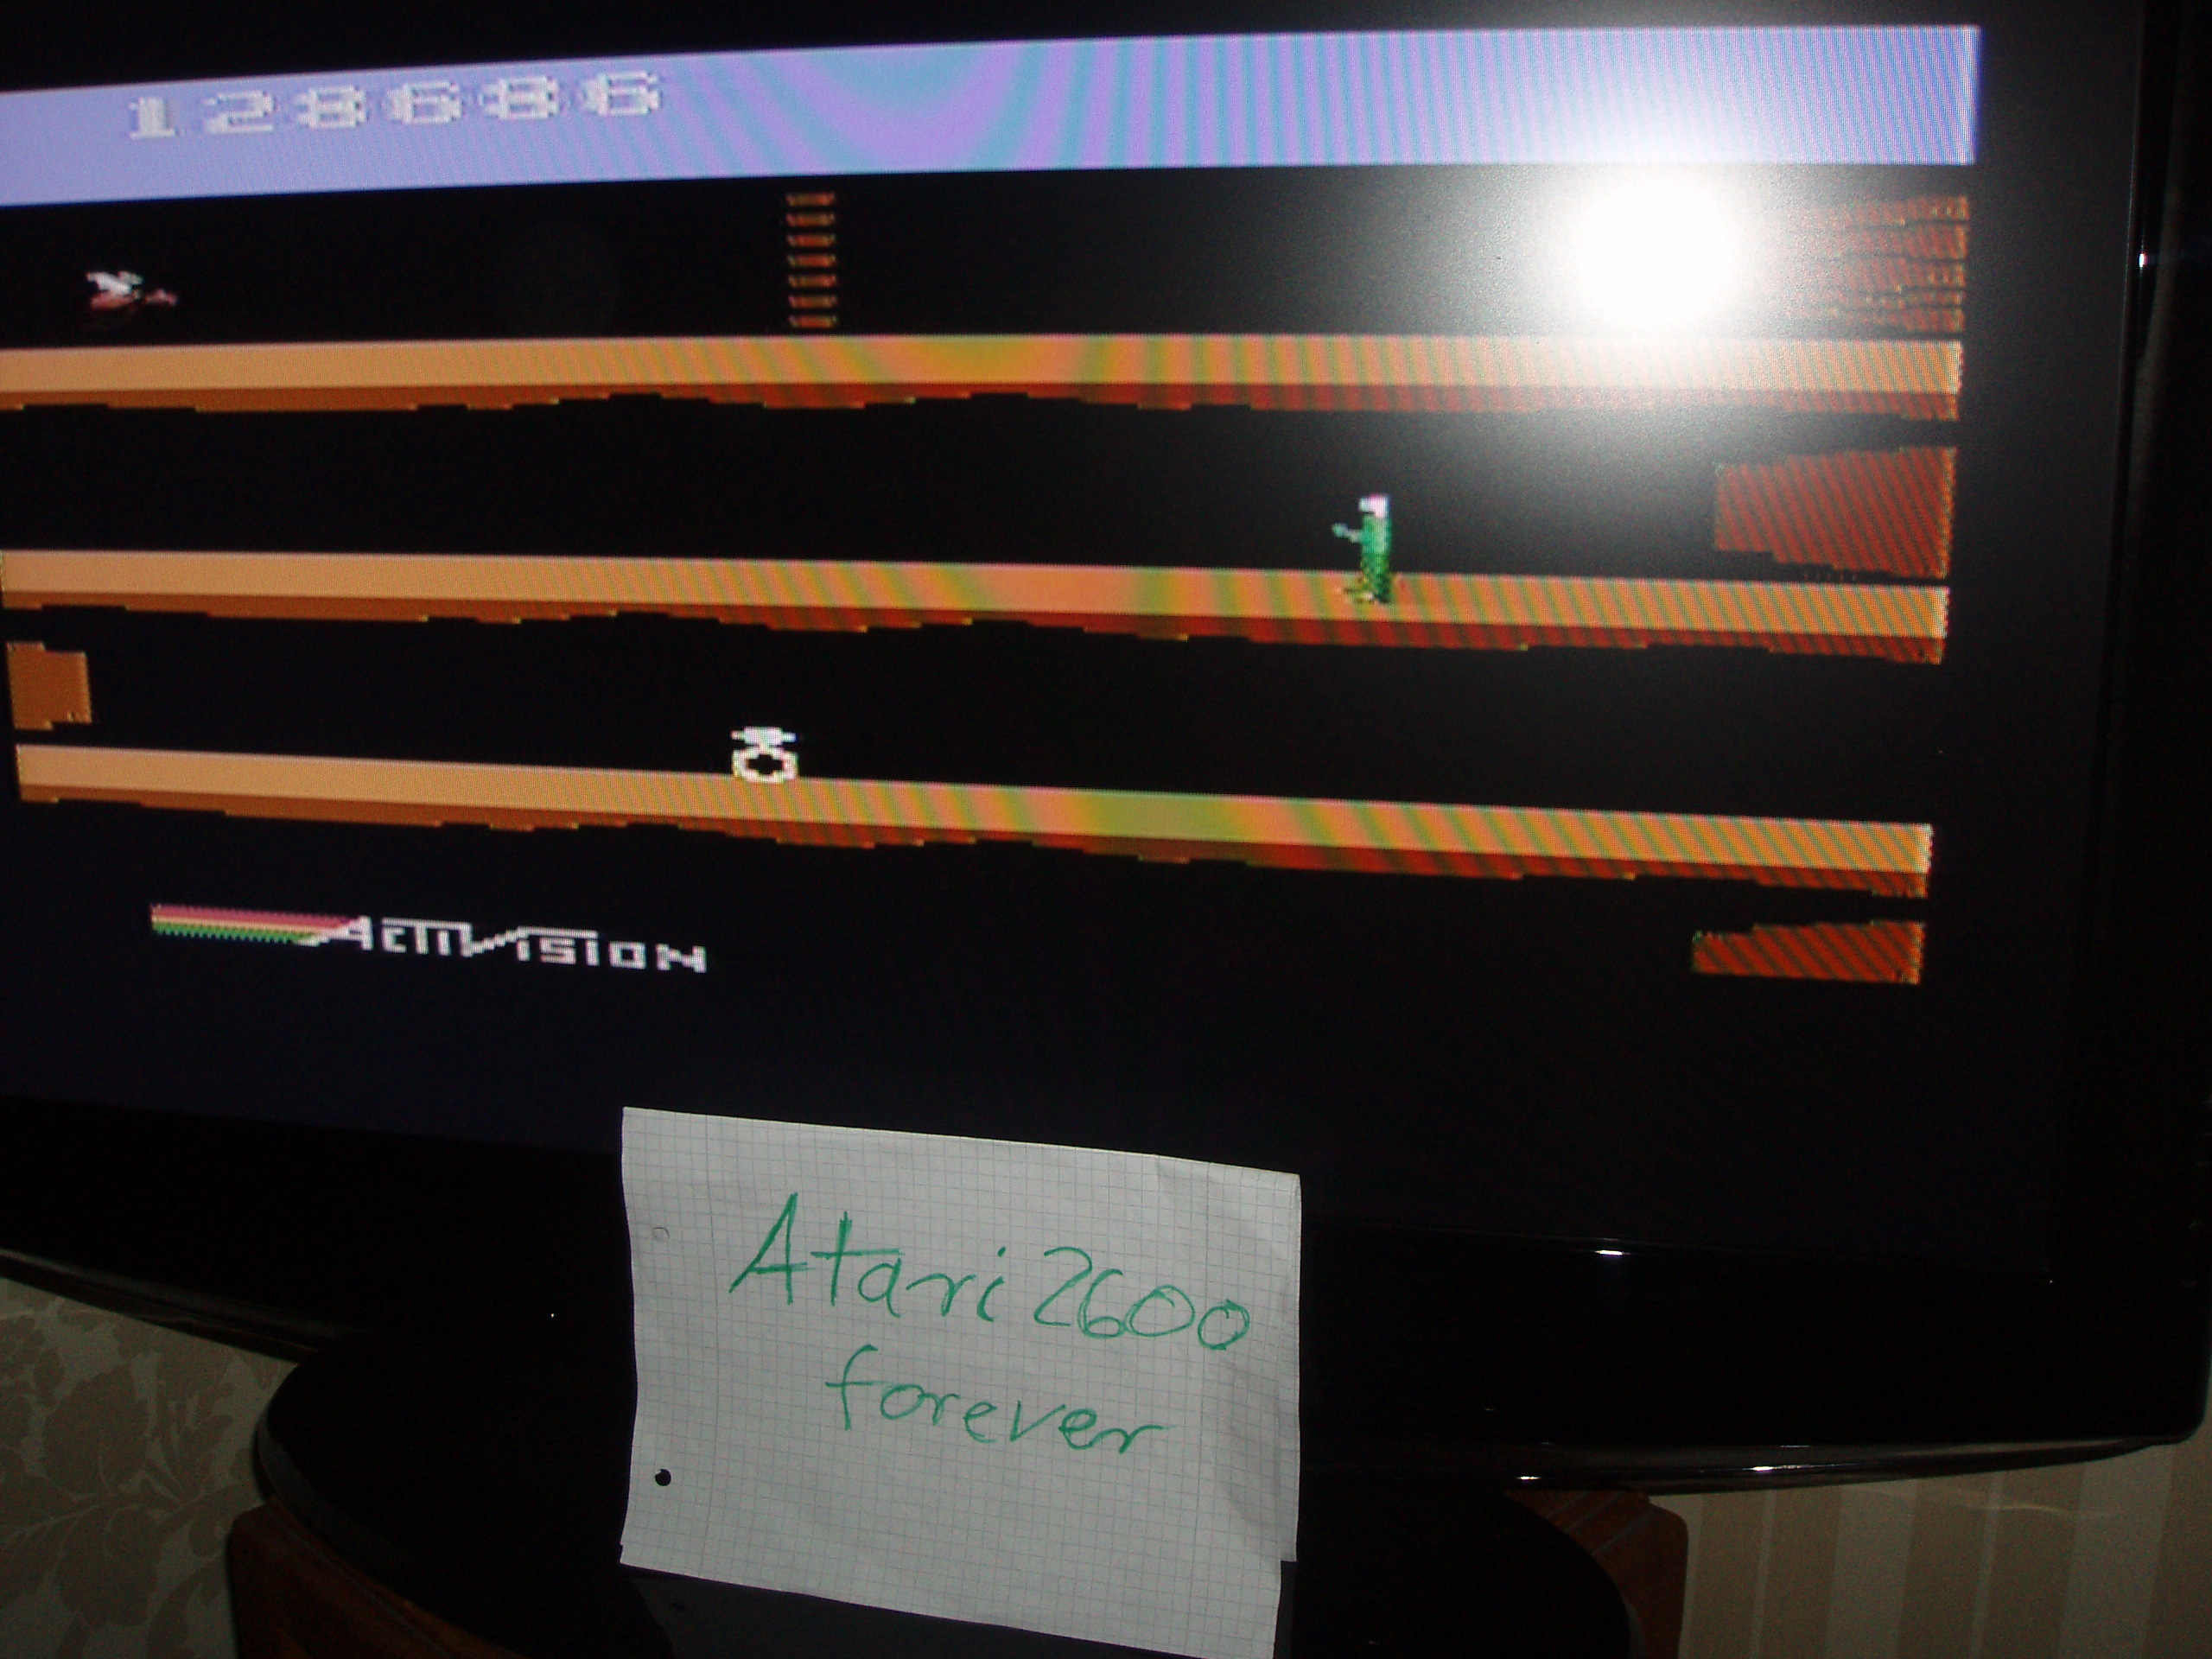 atari2600forever: Pitfall II: Lost Caverns (Atari 2600) 128,686 points on 2015-10-18 08:10:12